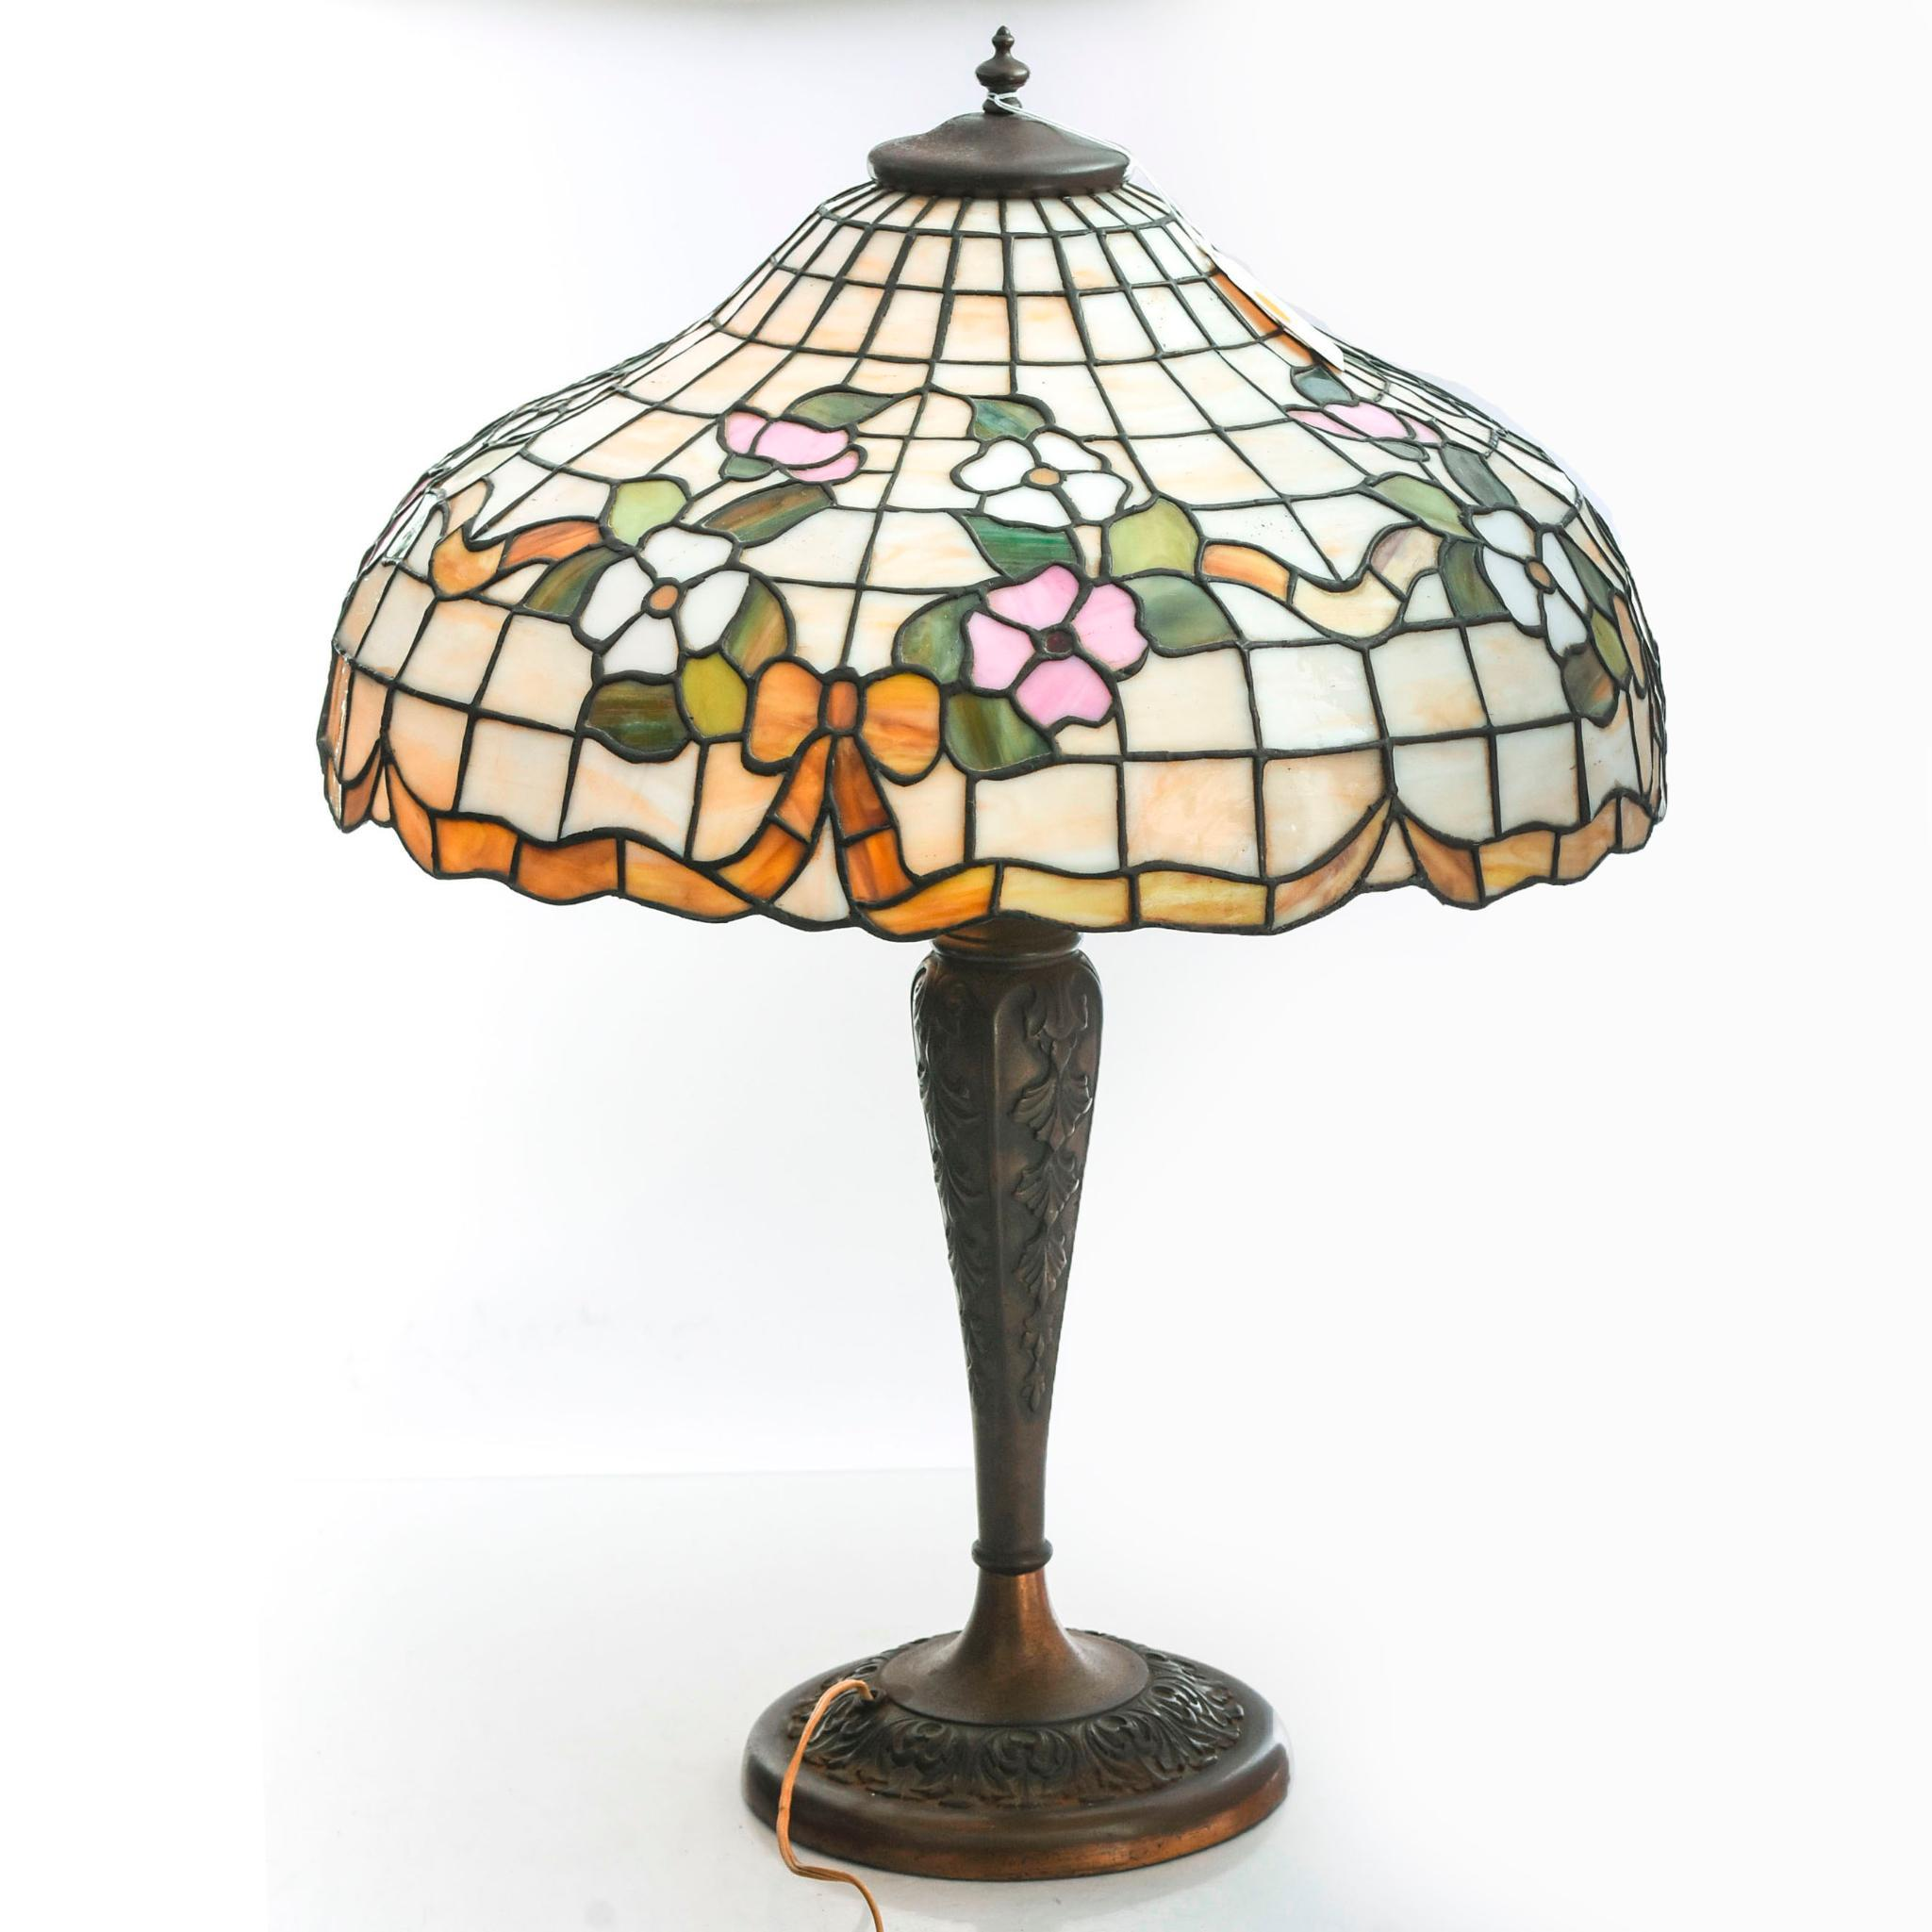 A Tiffany style lamp with bows in orange, pink, green and white colored glass.